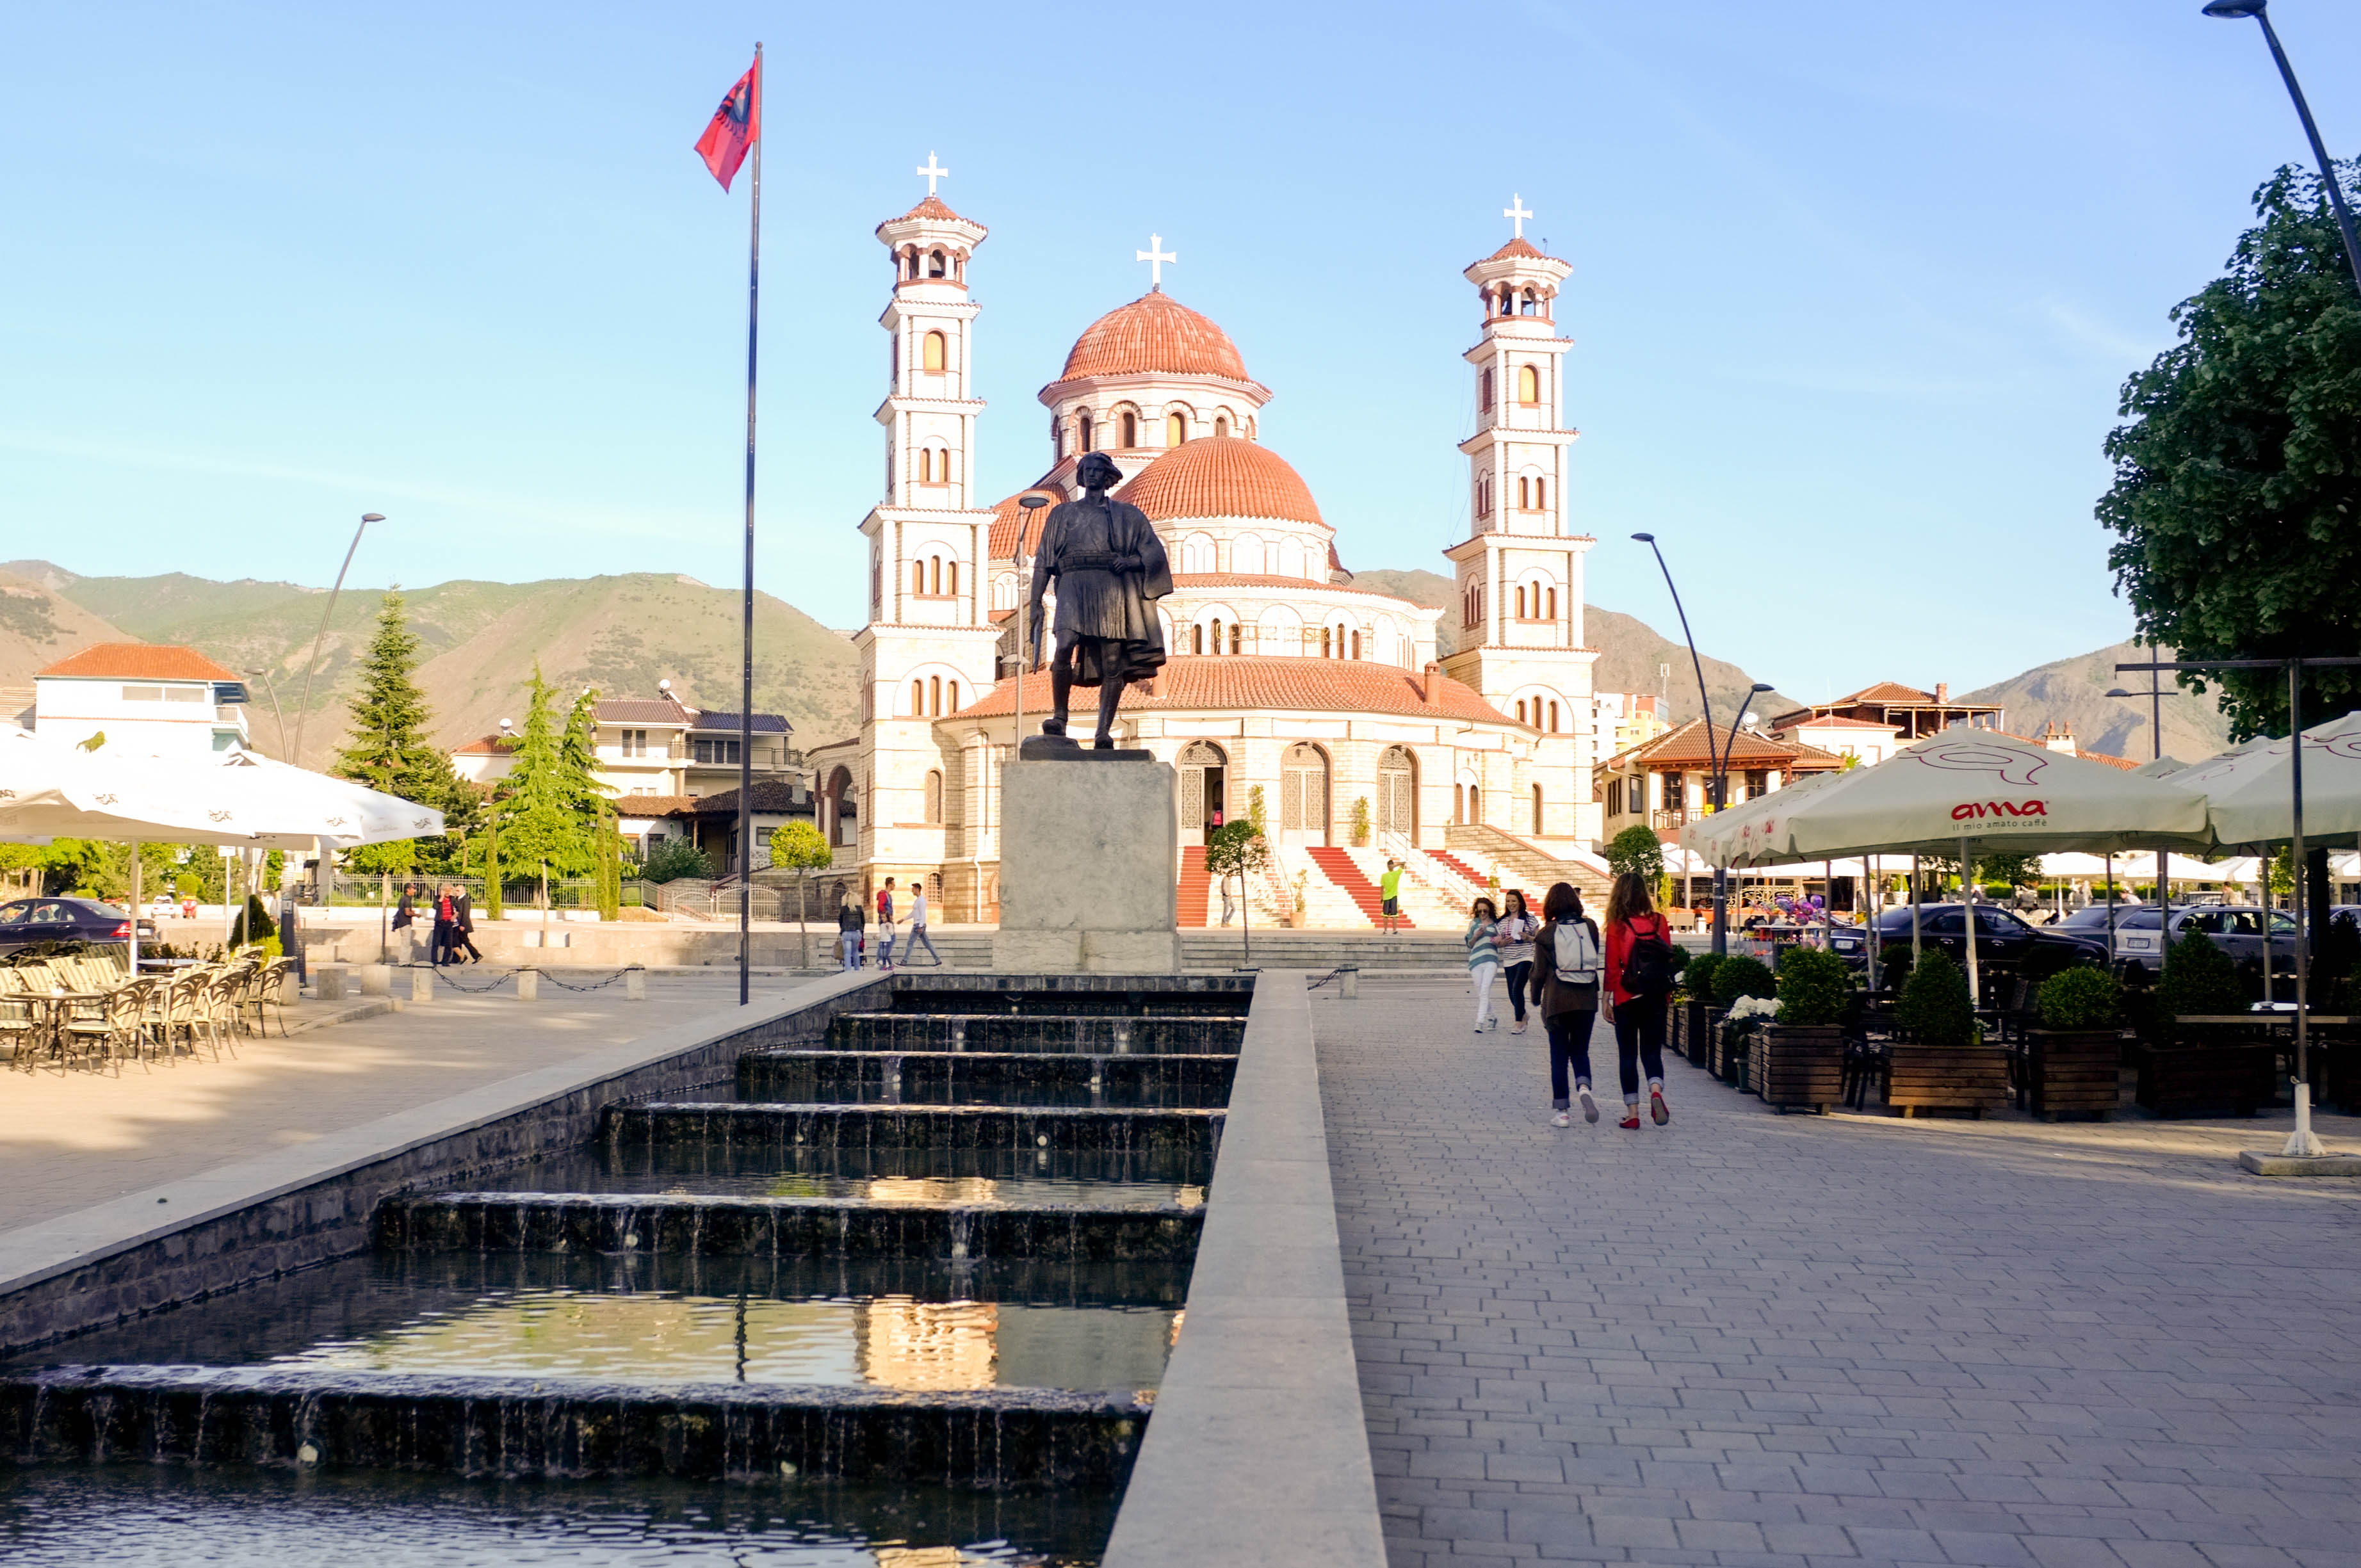 Albania Korca - Albania - #AlbaniaTourism #travel #FrizeMedia #DigitalMarketing